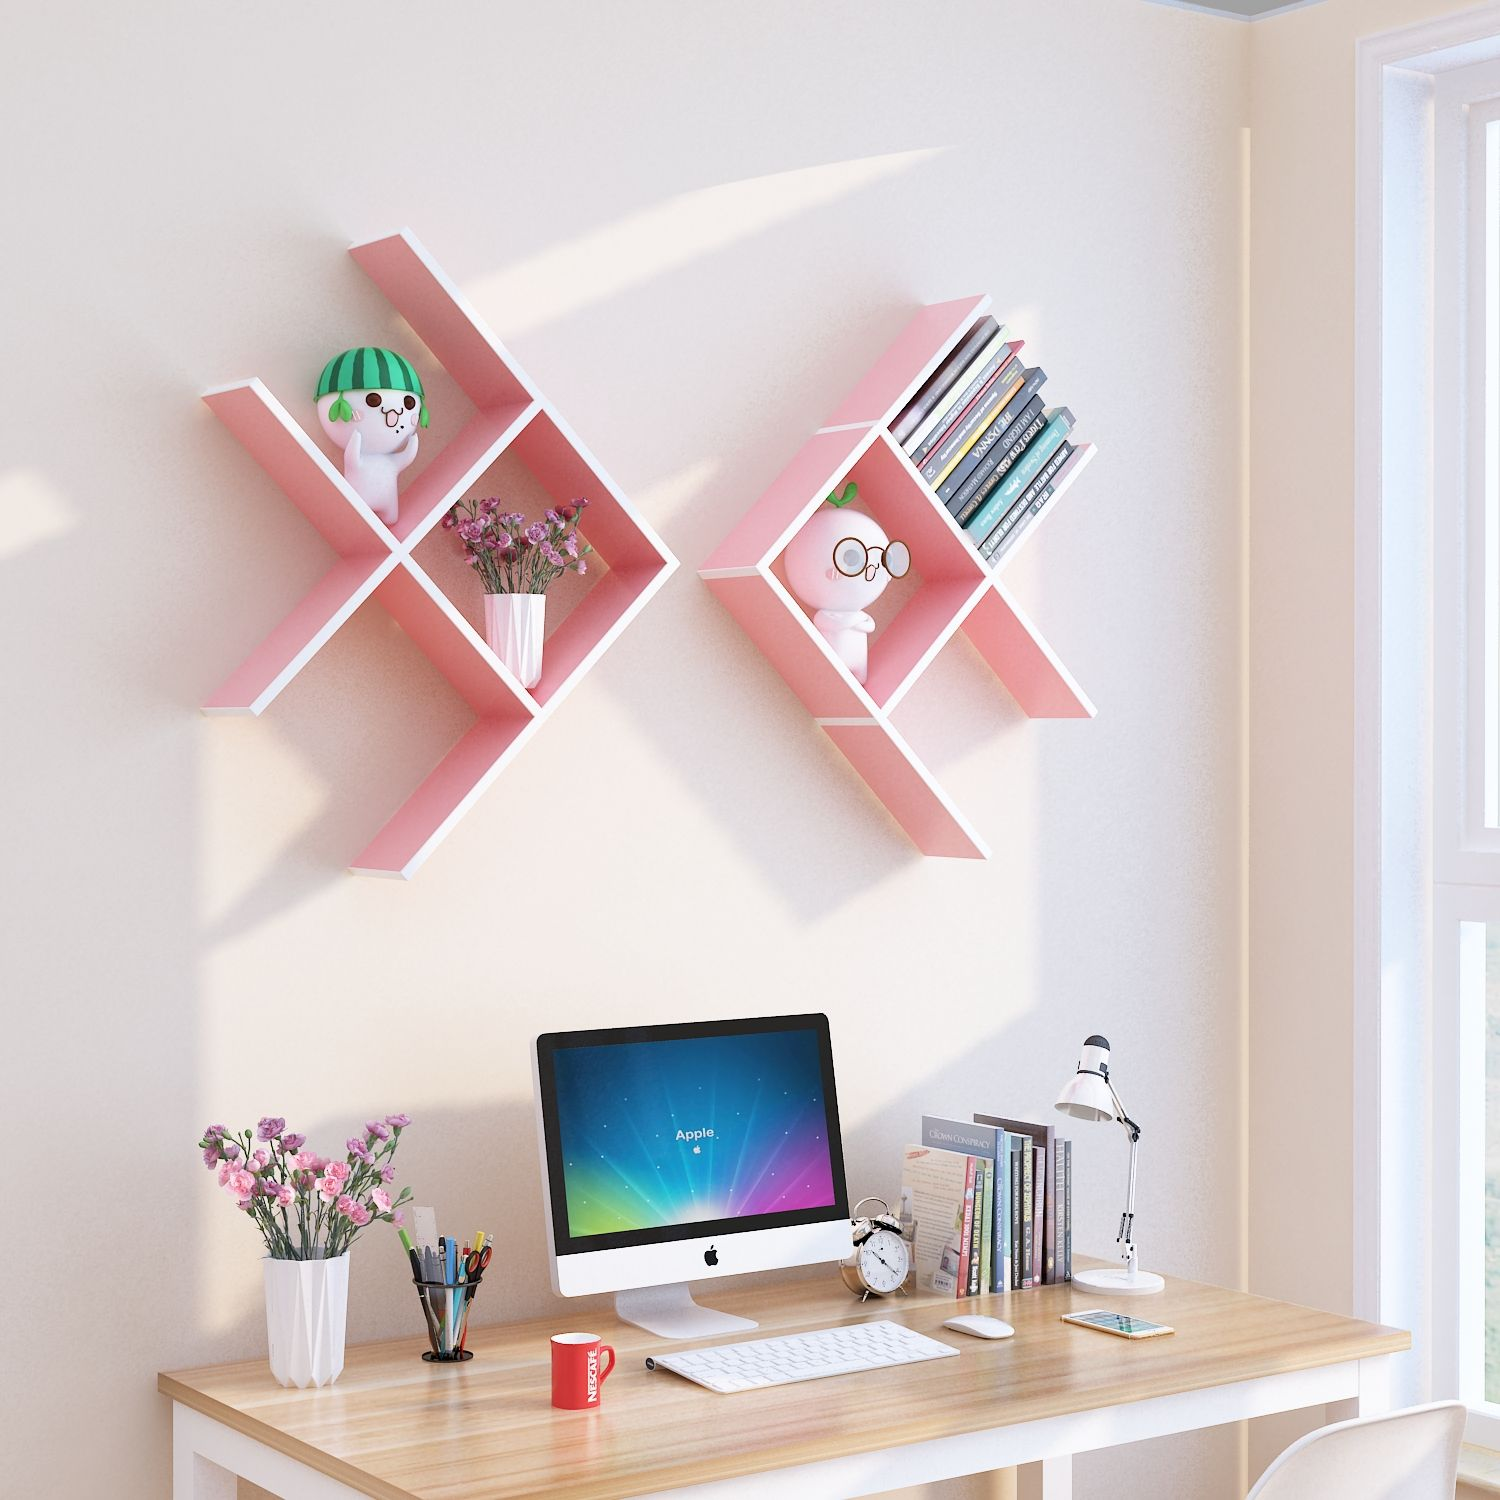 Pink Color Fish Shaped Wall Mounted Shelf In 2020 Wall Mounted Bookshelves Kids Bookshelf Organization Kids Wall Shelves